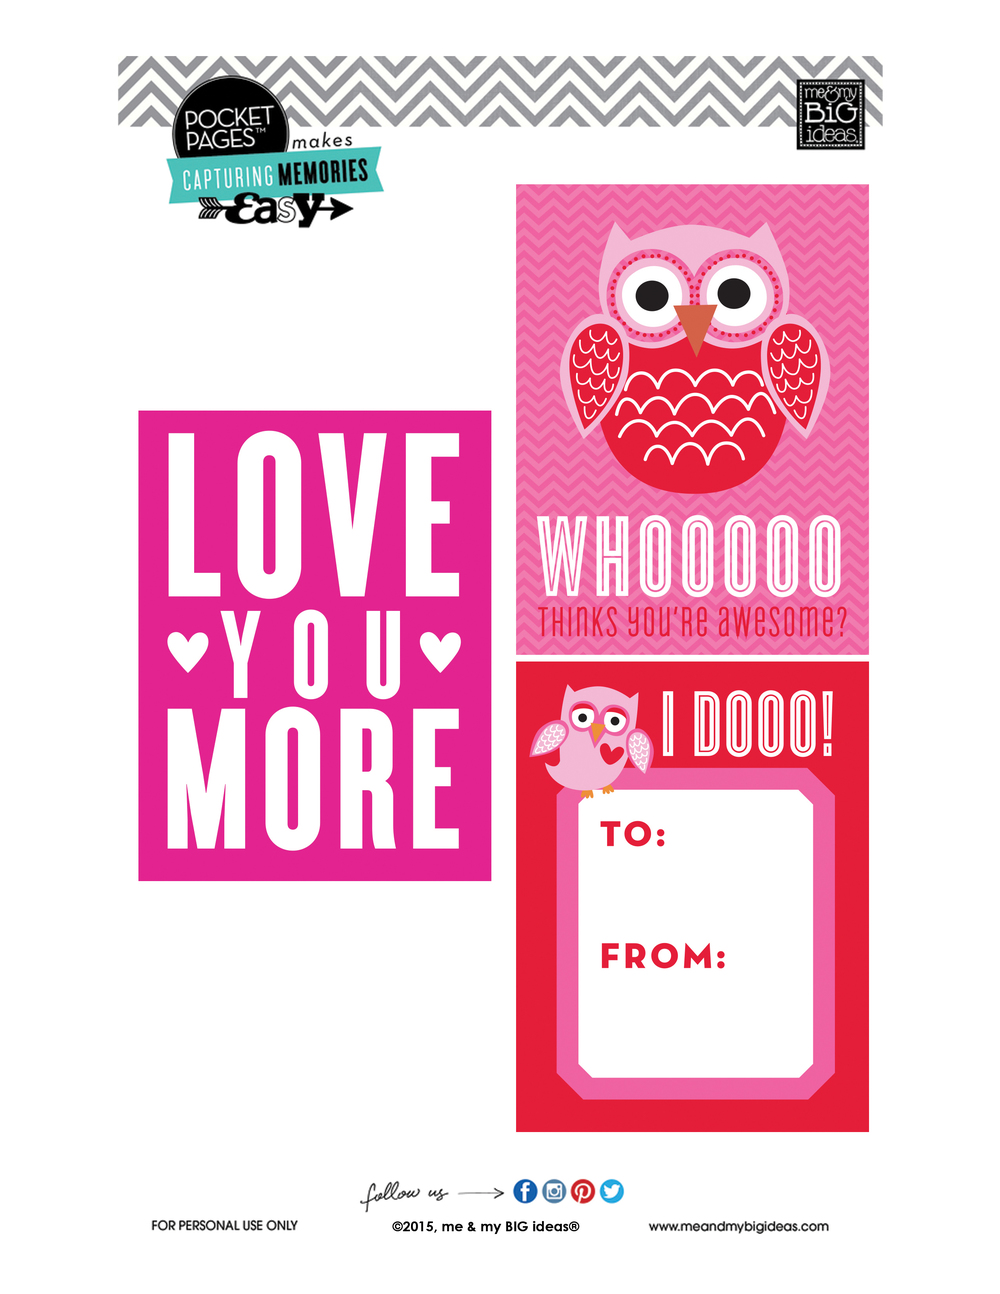 Valentine's POCKET PAGES™ Free Printable 06 | me & my BIG ideas